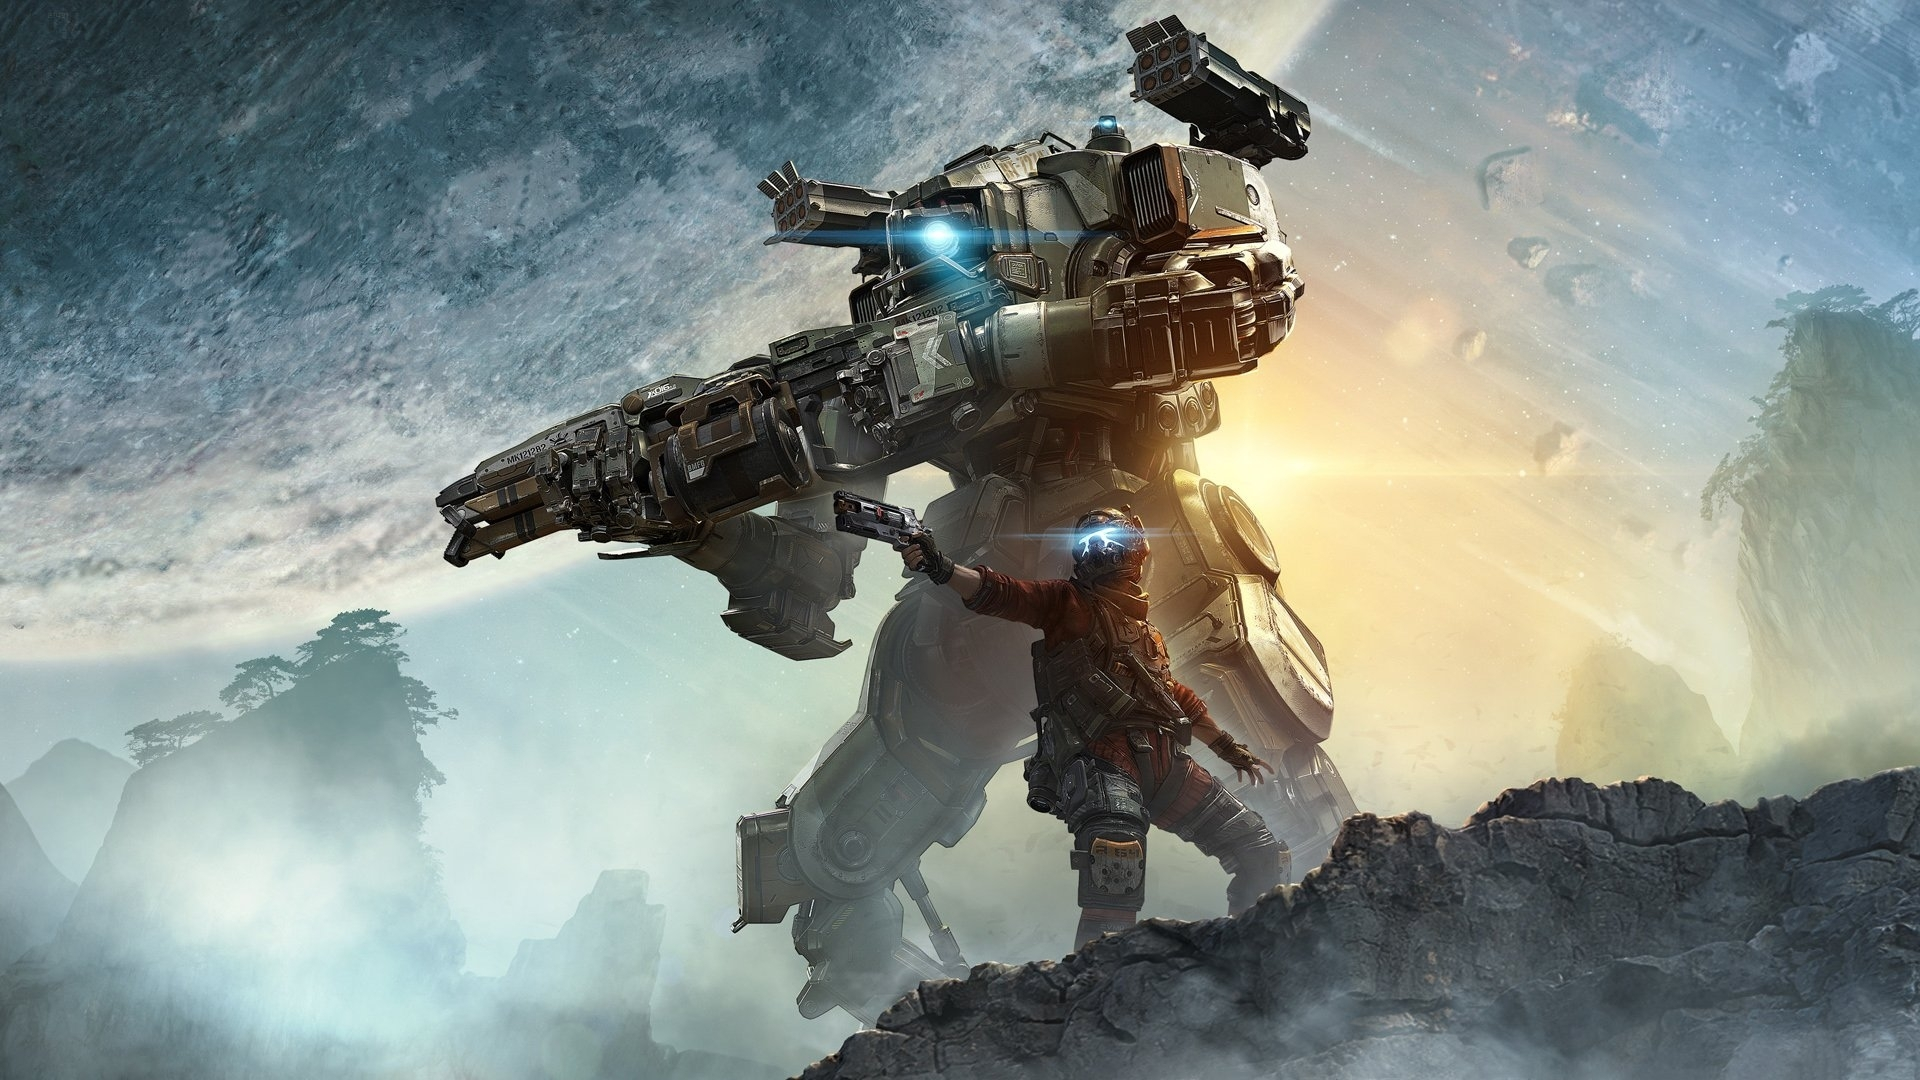 10 Top Titanfall 2 Hd Wallpaper FULL HD 1080p For PC Desktop